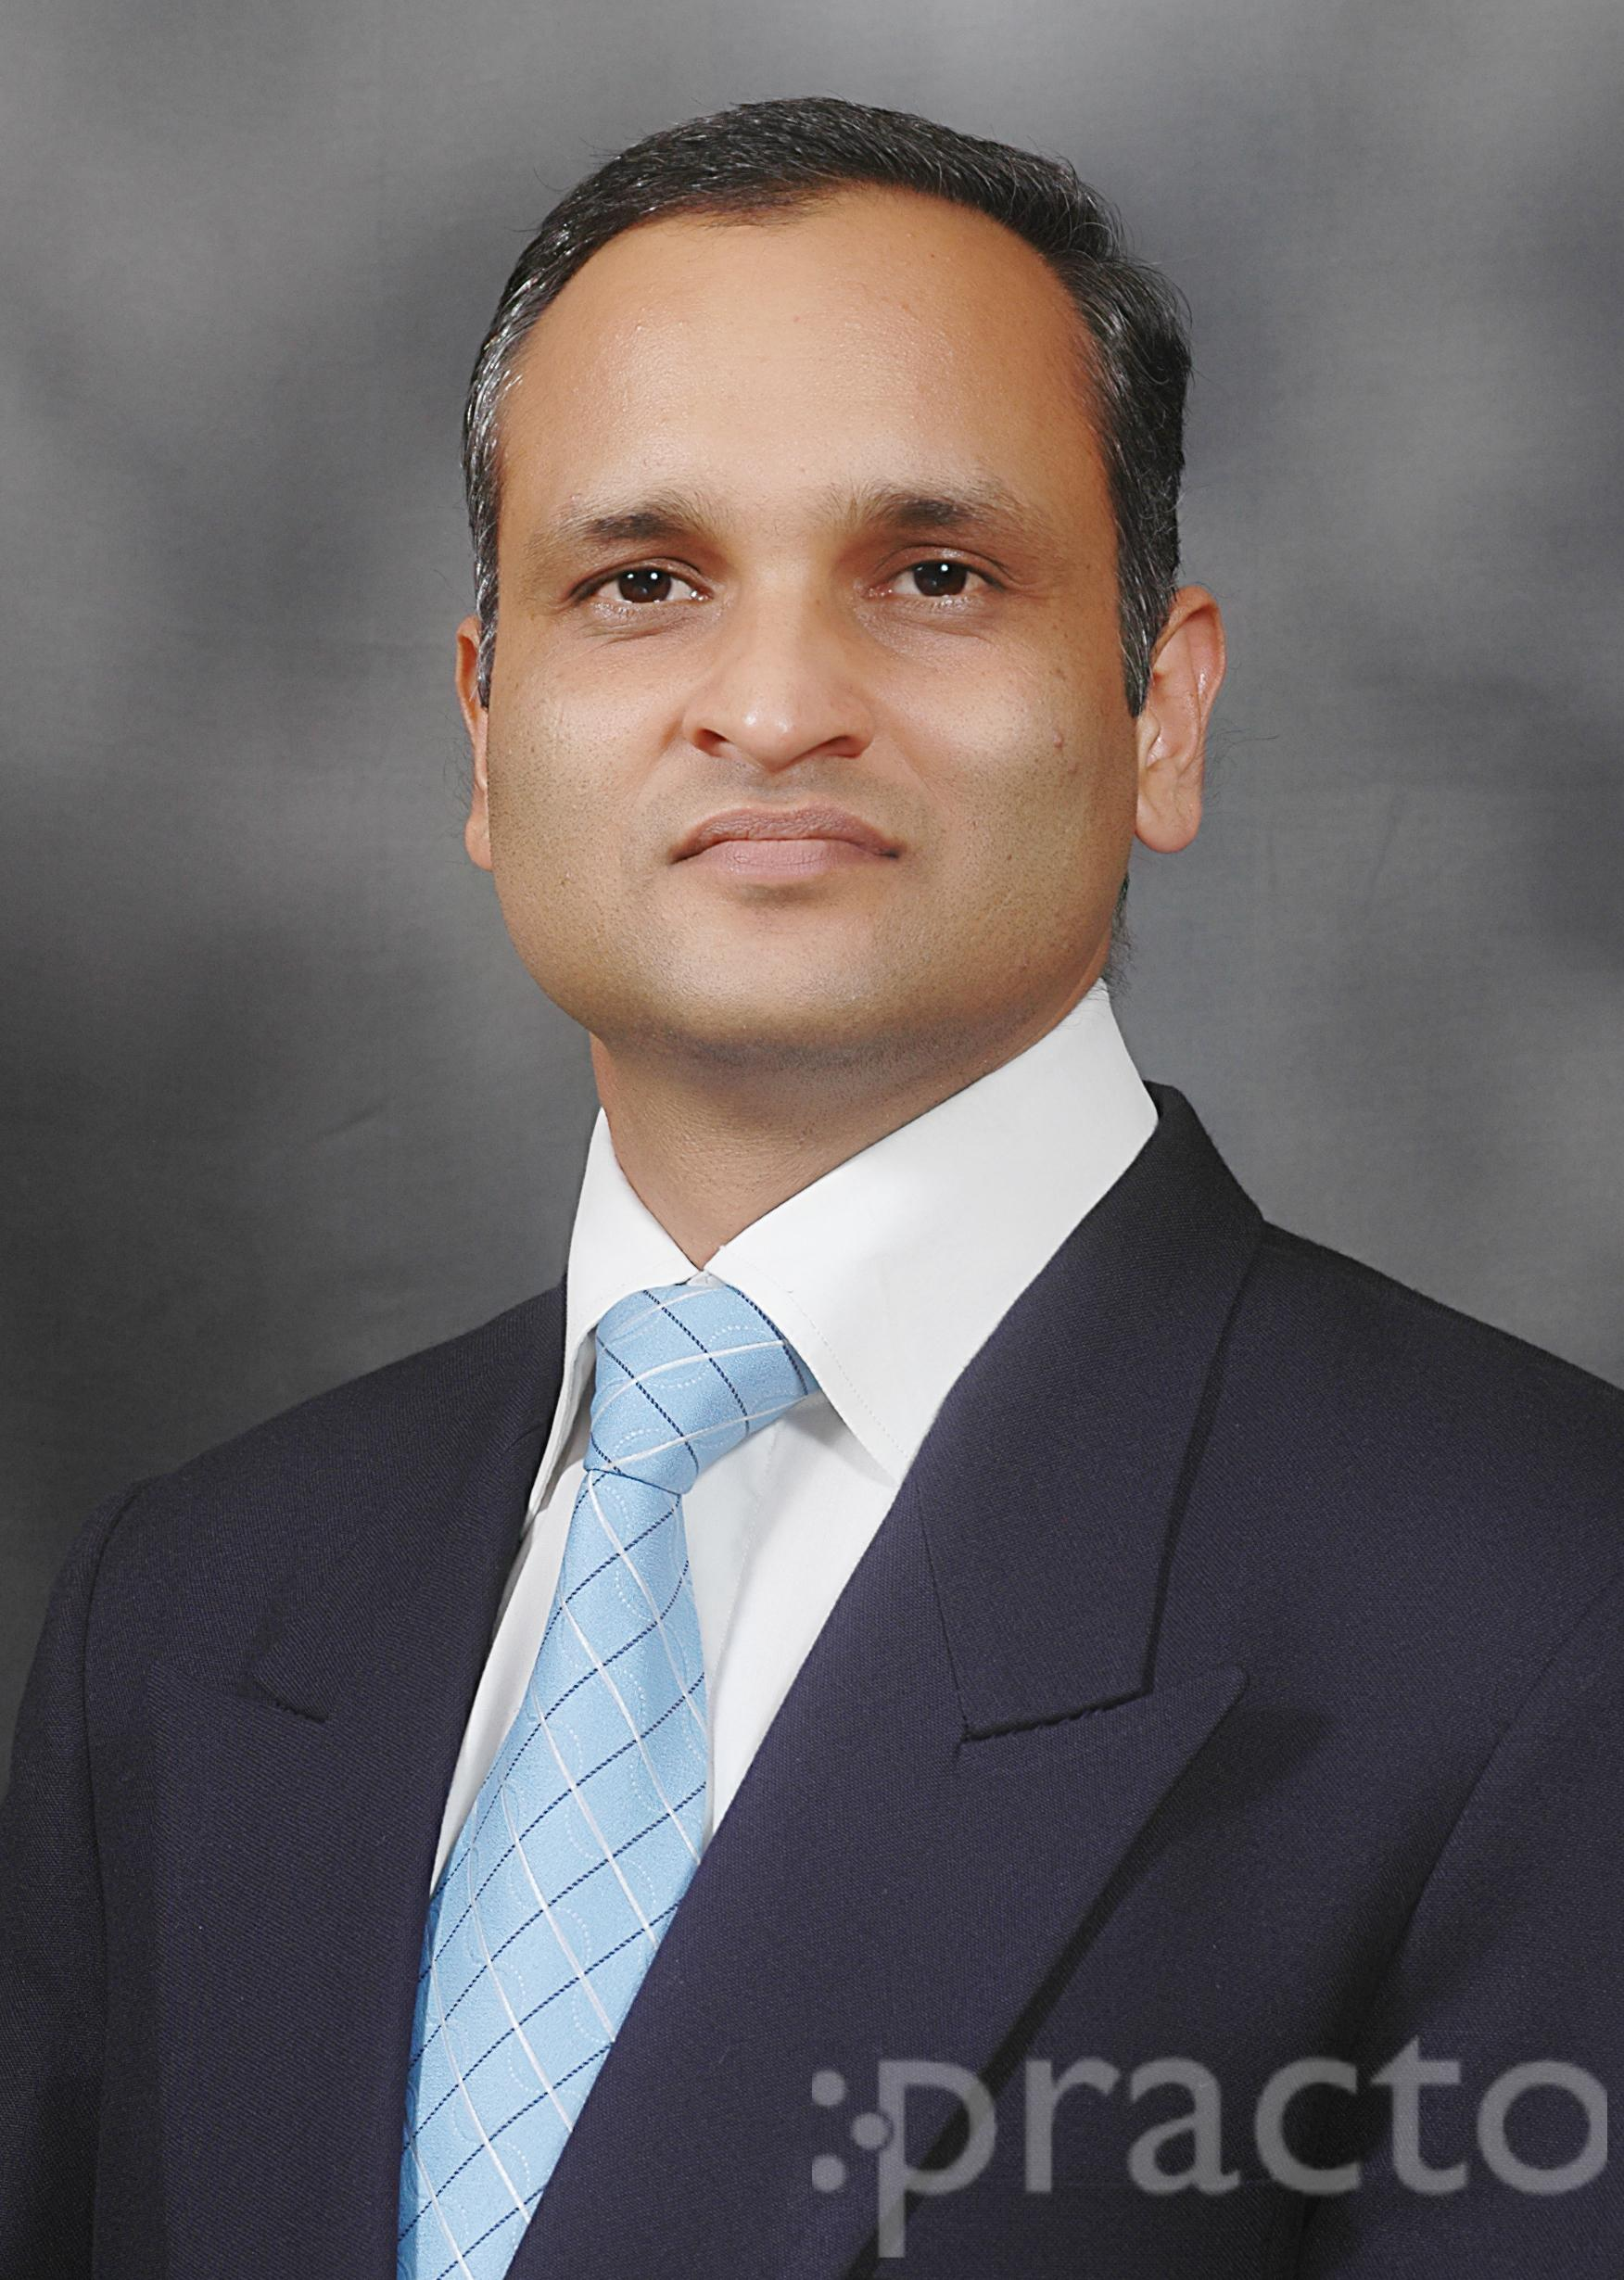 Dr. A S Pandey - Orthopedist